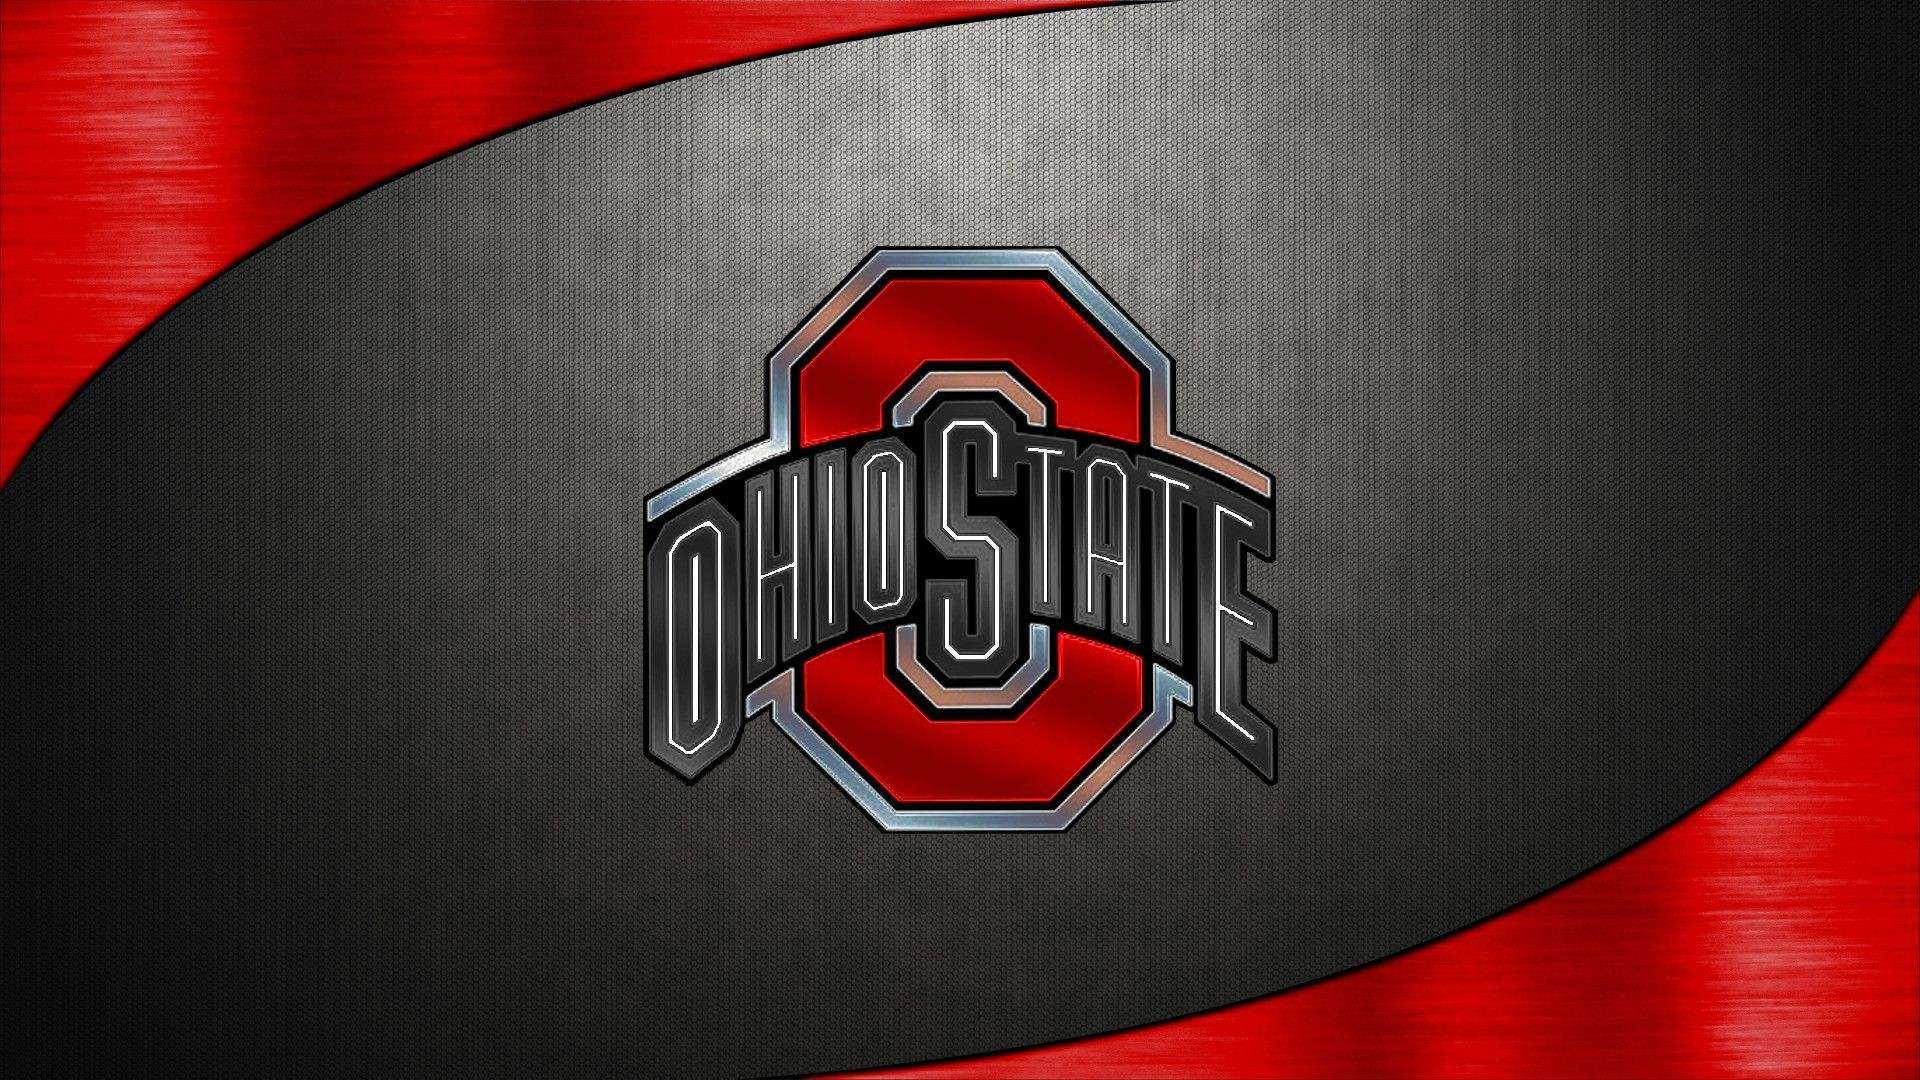 1920x1080 Ohio State Football Wallpaper | HD Wallpapers | Pinterest | Wallpaper and  Hd wallpaper